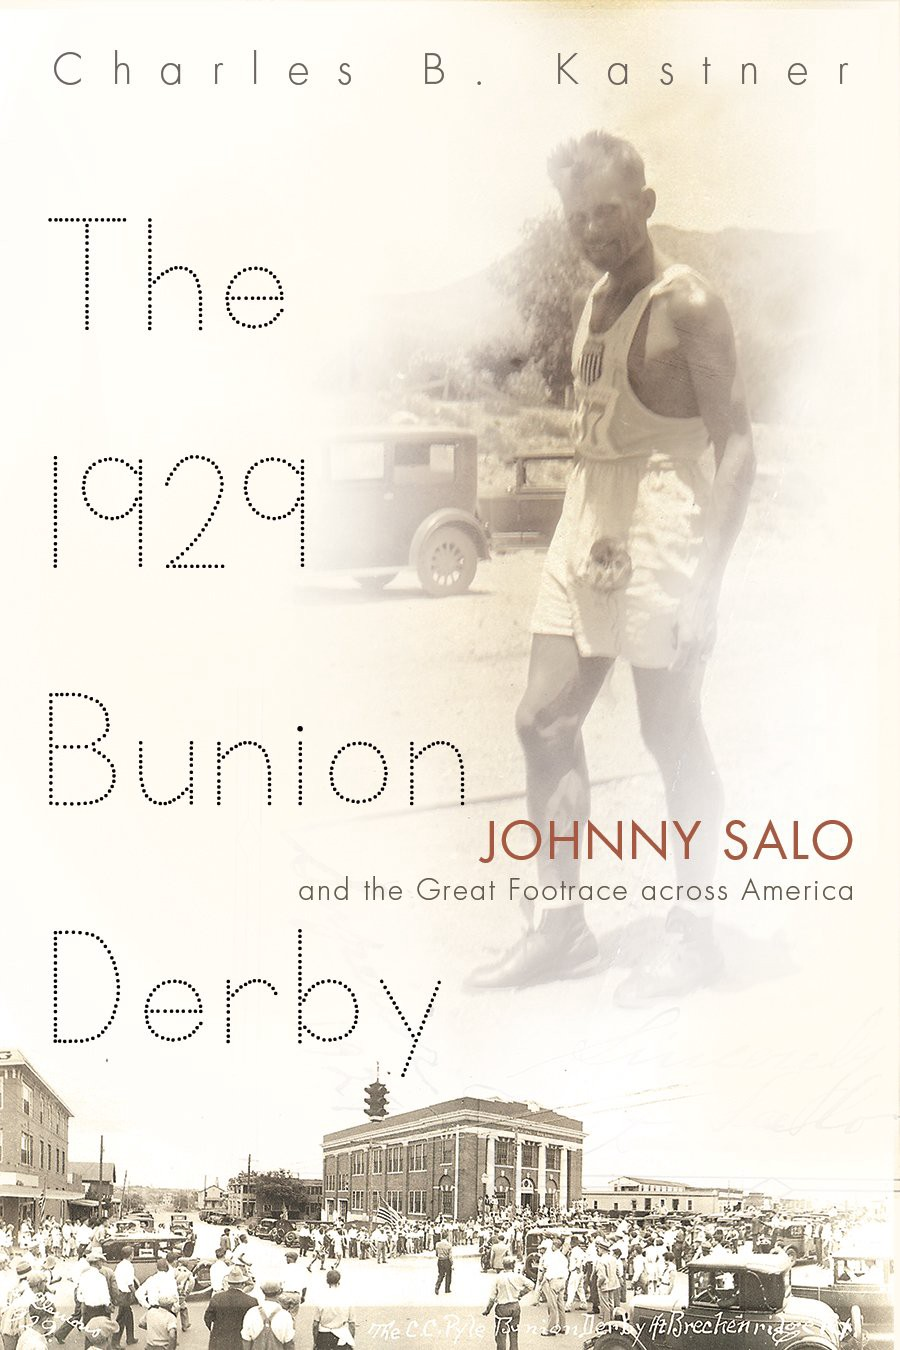 Ten Tips For Running Long 262m With Just Five Hours Of Aqua Water Jogging Belt Your Run Cross Training Post Stroke Attack Size L The Second Book 1929 Bunion Derby Johnny Salo And Great Footrace Across America 2014 Is Even More Phenomenal